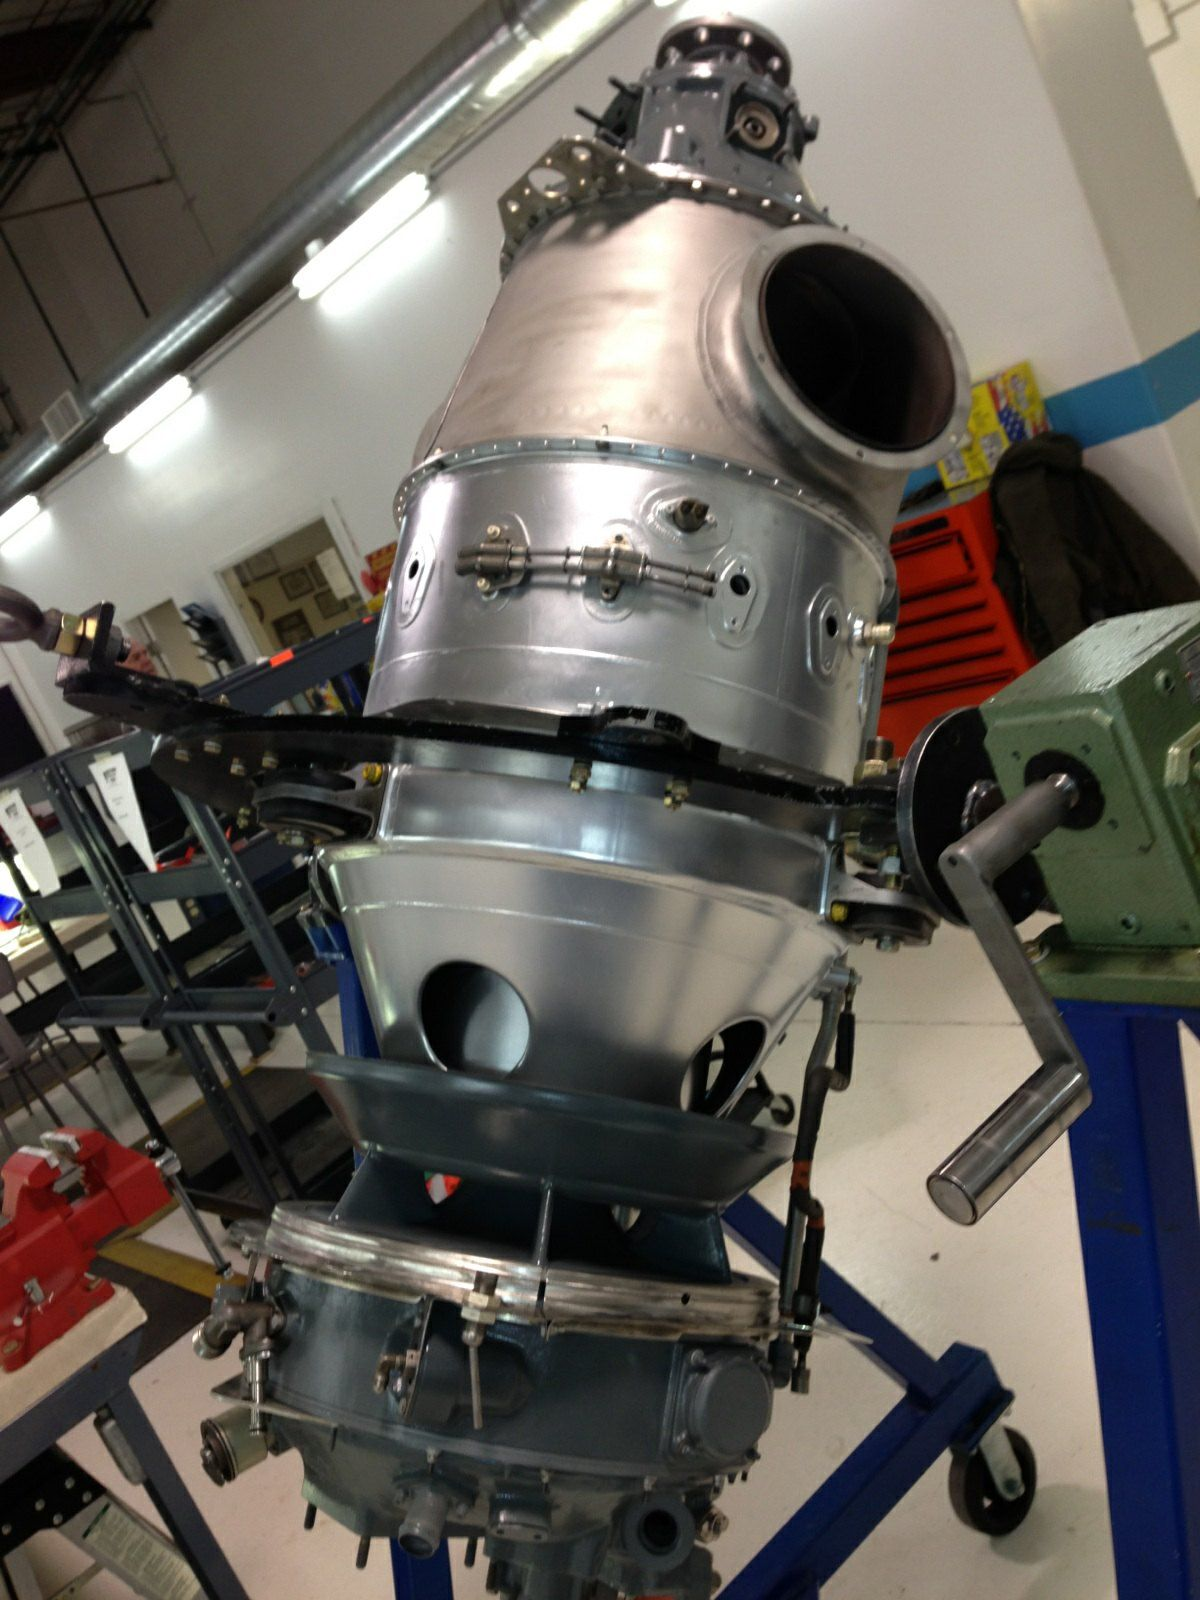 High Quality Pt 6 Turbine Engines For Sale utpparts